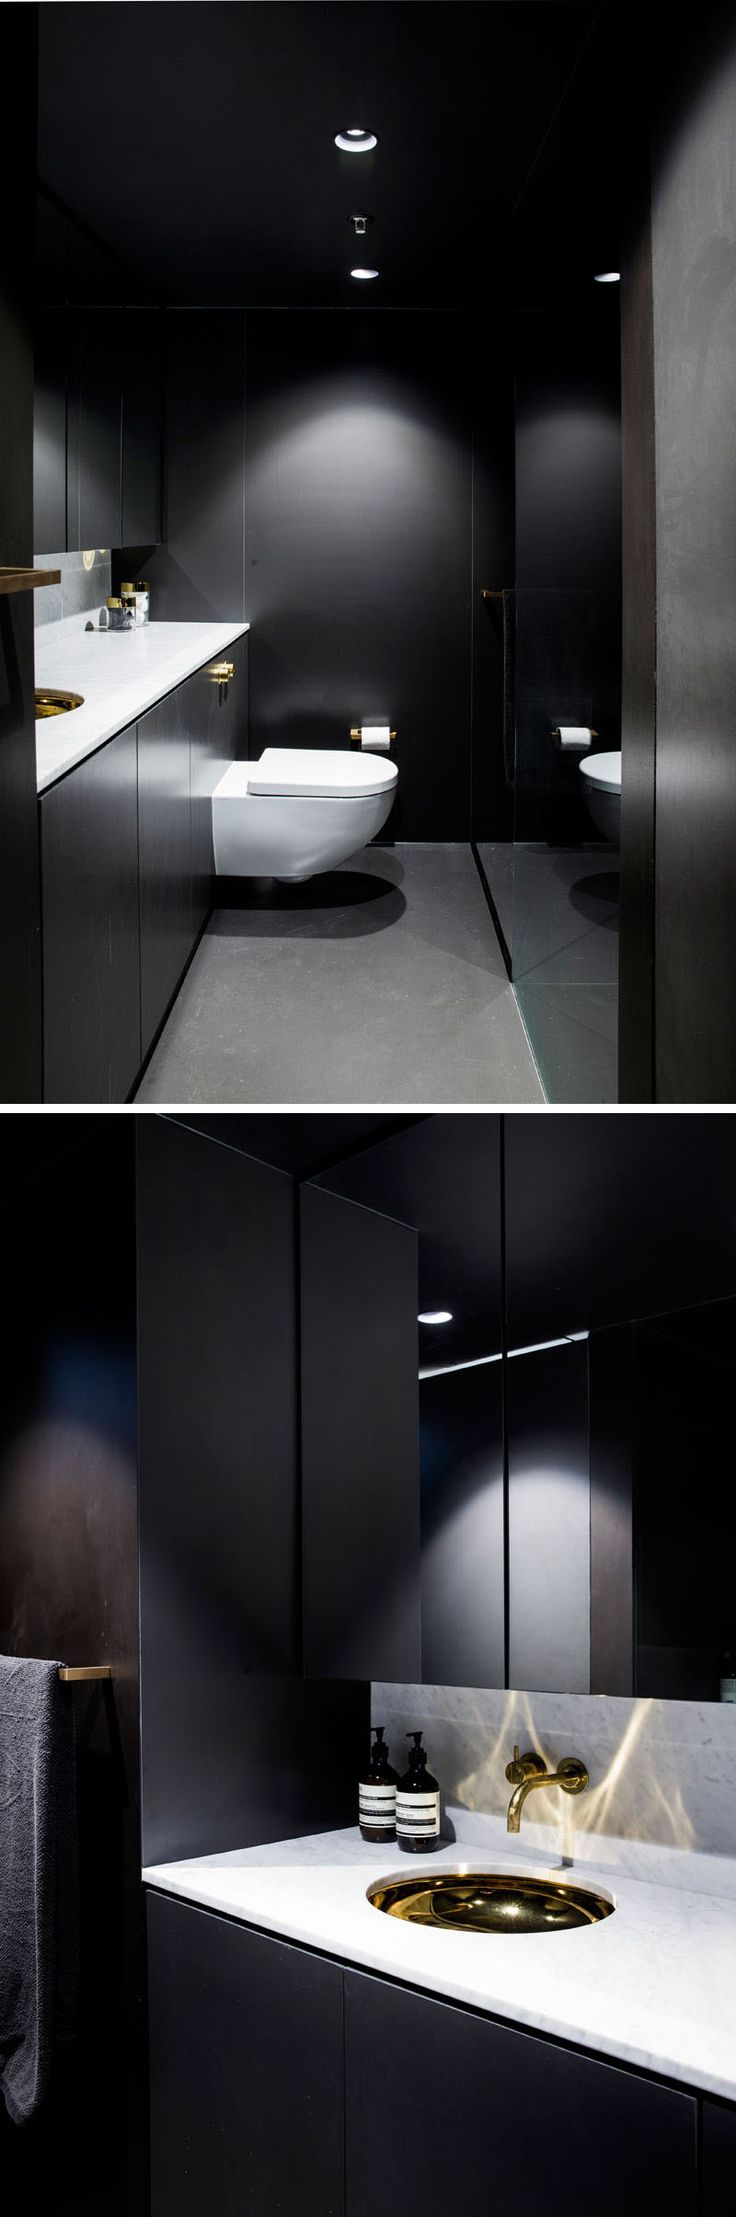 This dramatic black bathroom features a floor-to-ceiling mirror, grey flooring, a white countertop and gold accents.